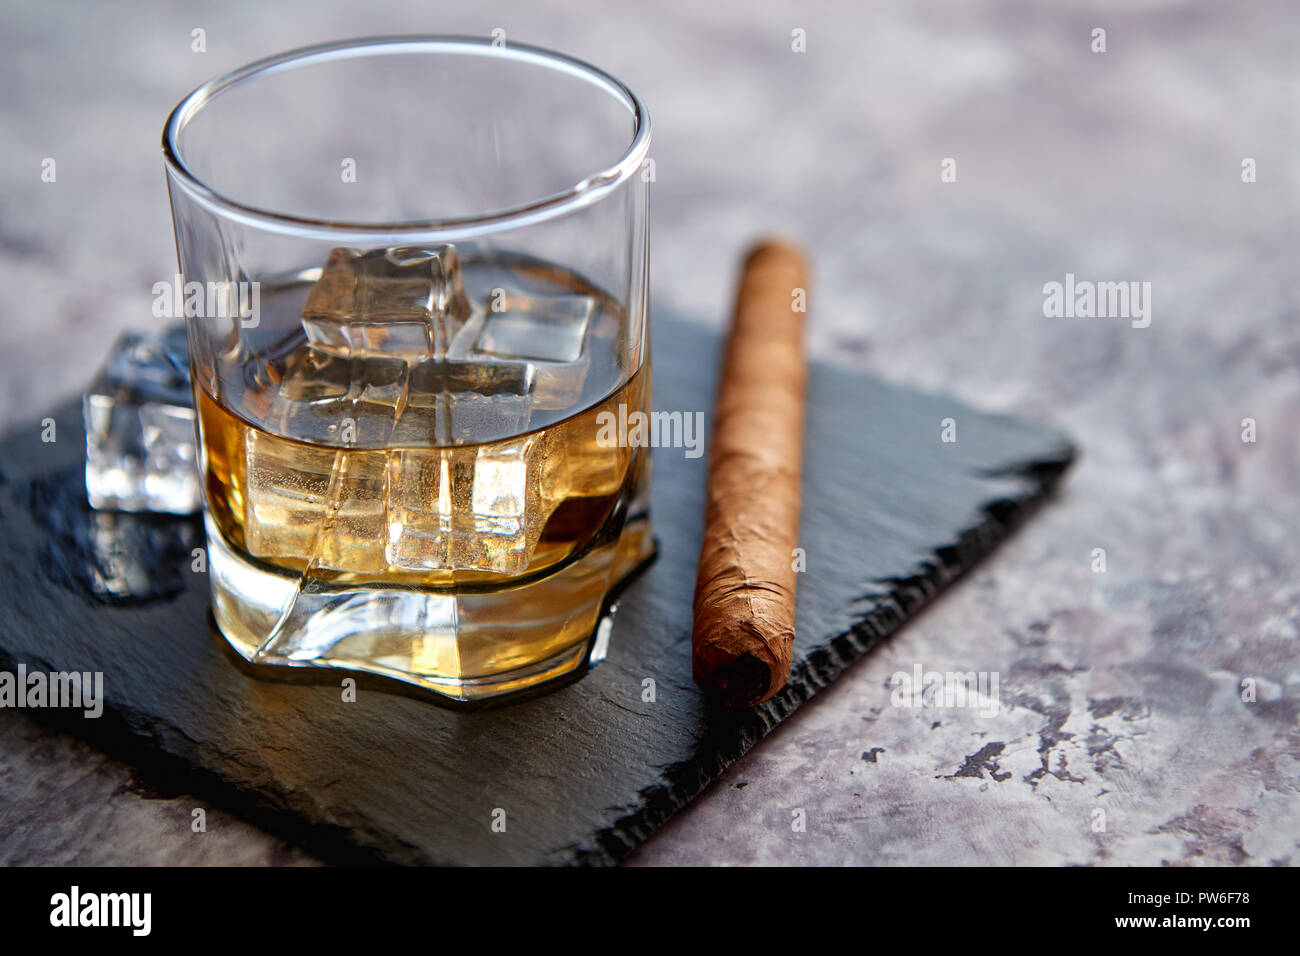 Glass of whiskey with ice cubes and cigar - Stock Image